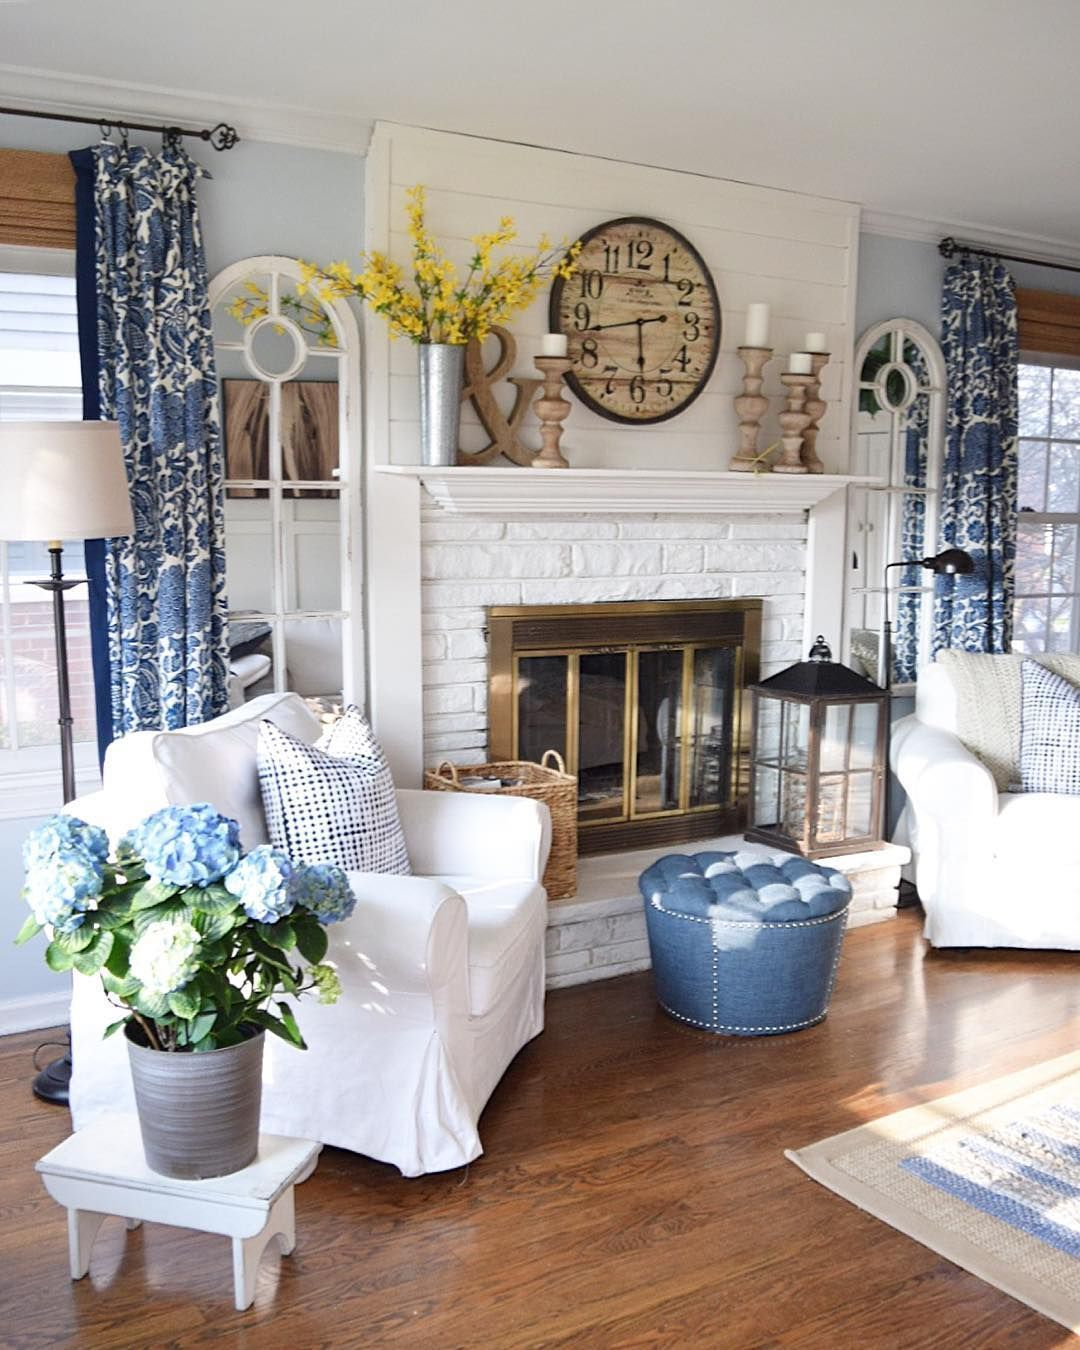 Cozy Coastal Living Room: Pin By Benigno Decor On Living Room